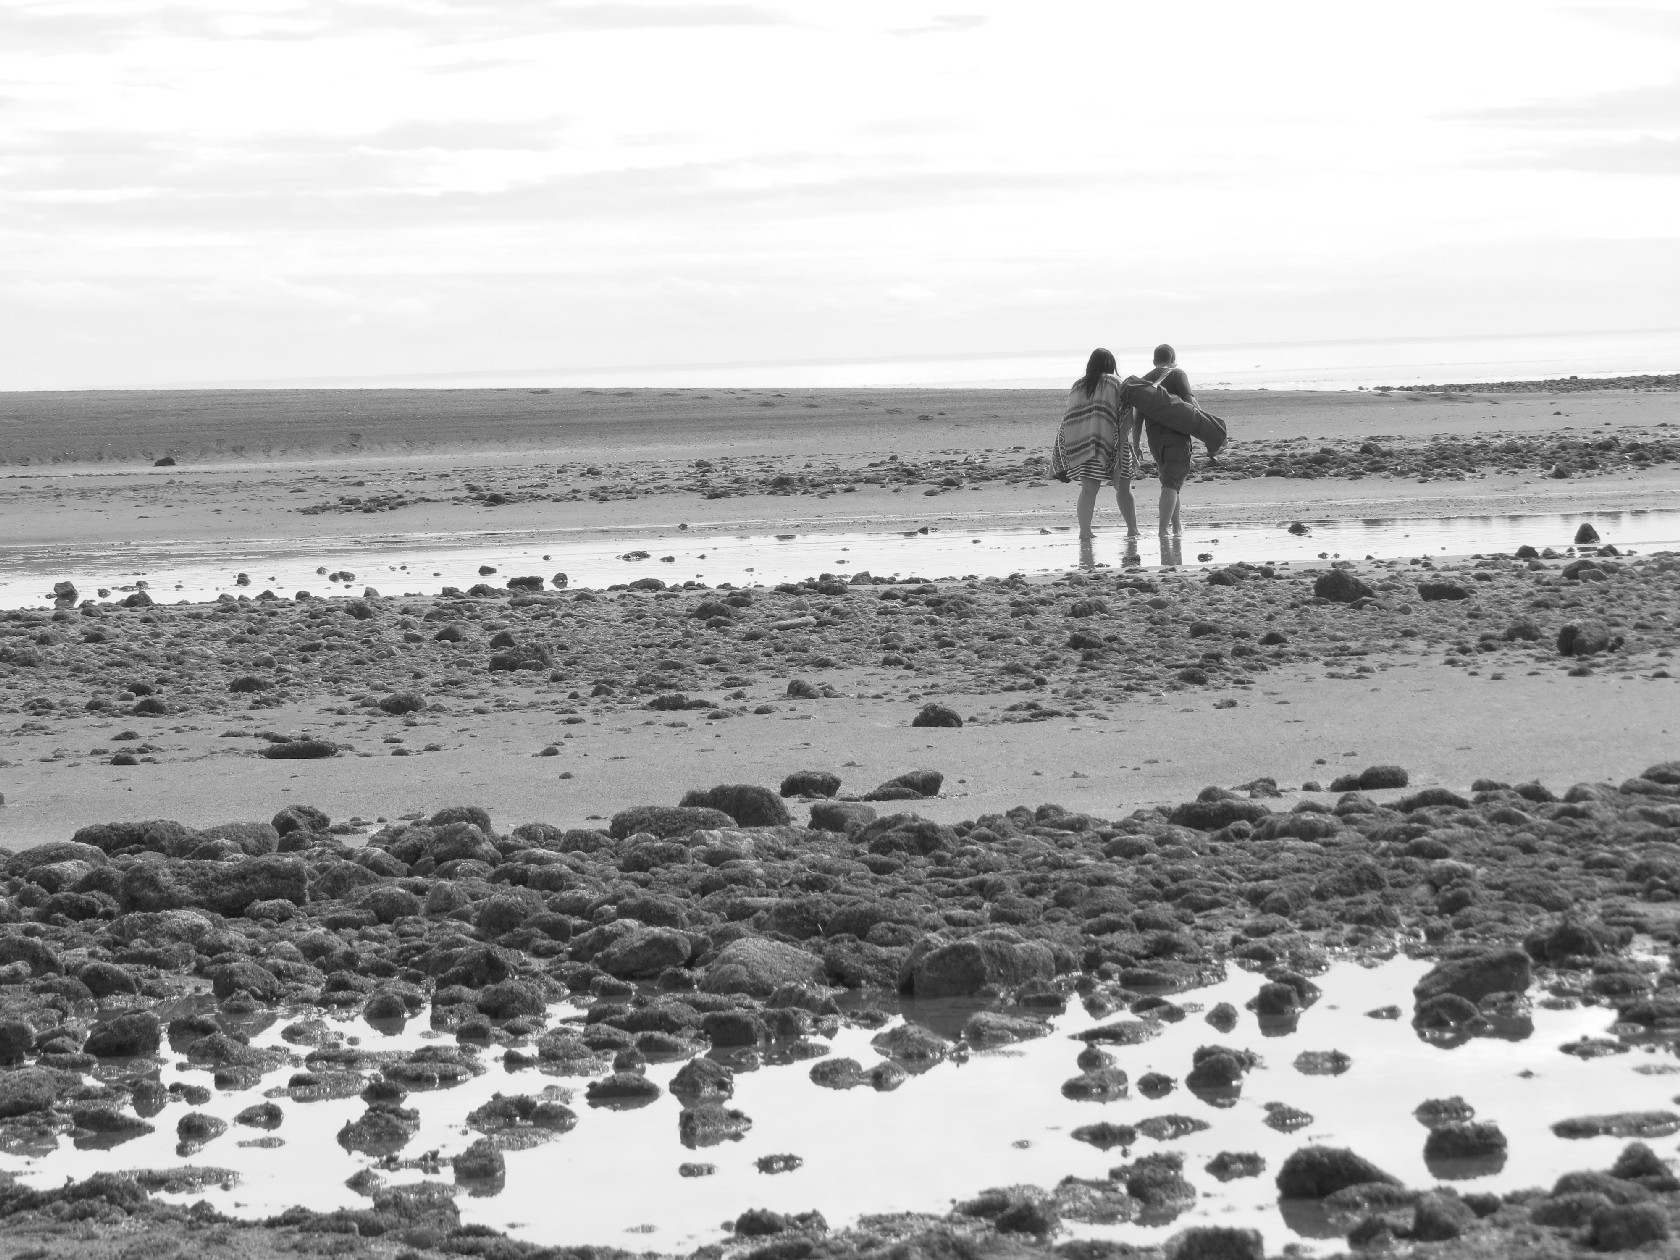 Walking on the tidal plane in black and white, Alma